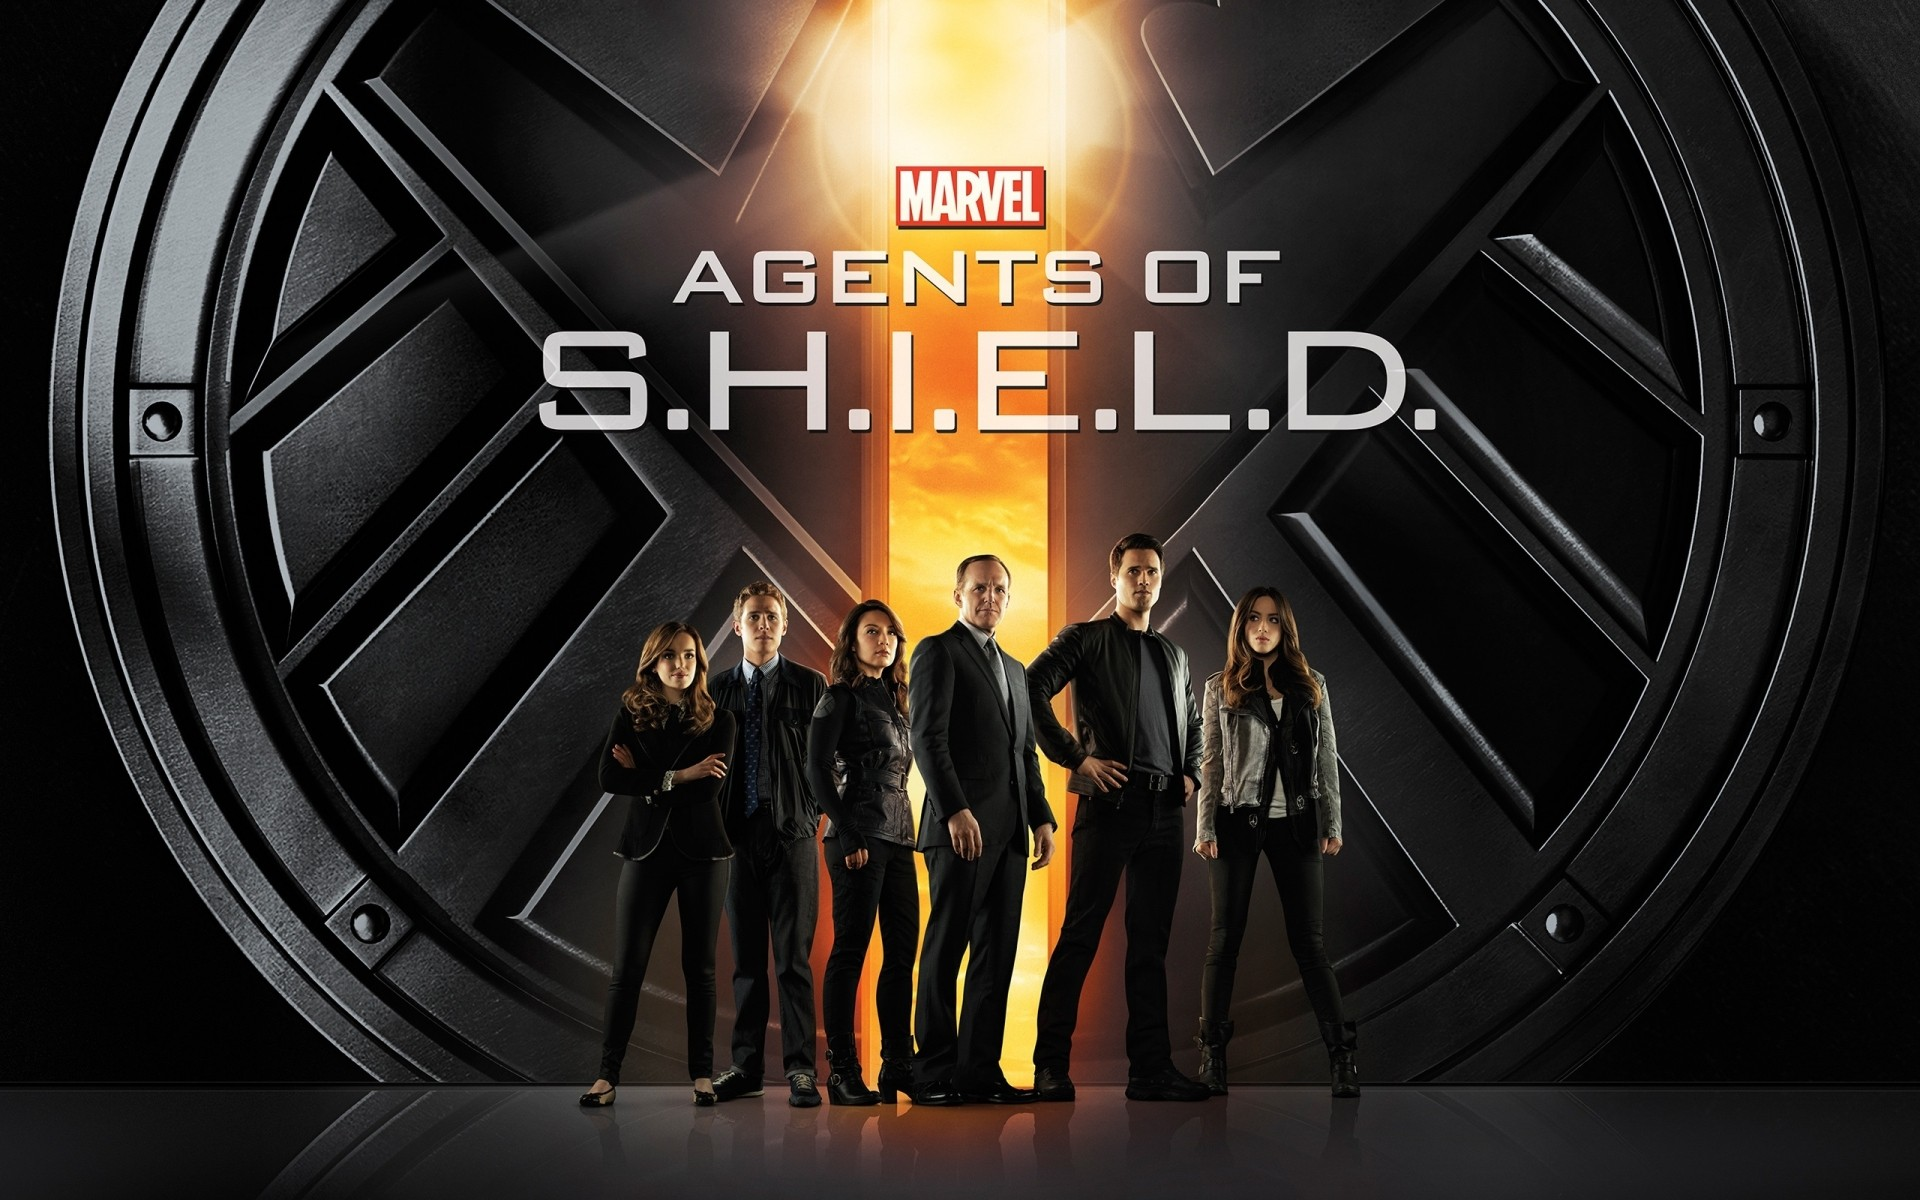 tv series indoors business illustration technology agents of shield